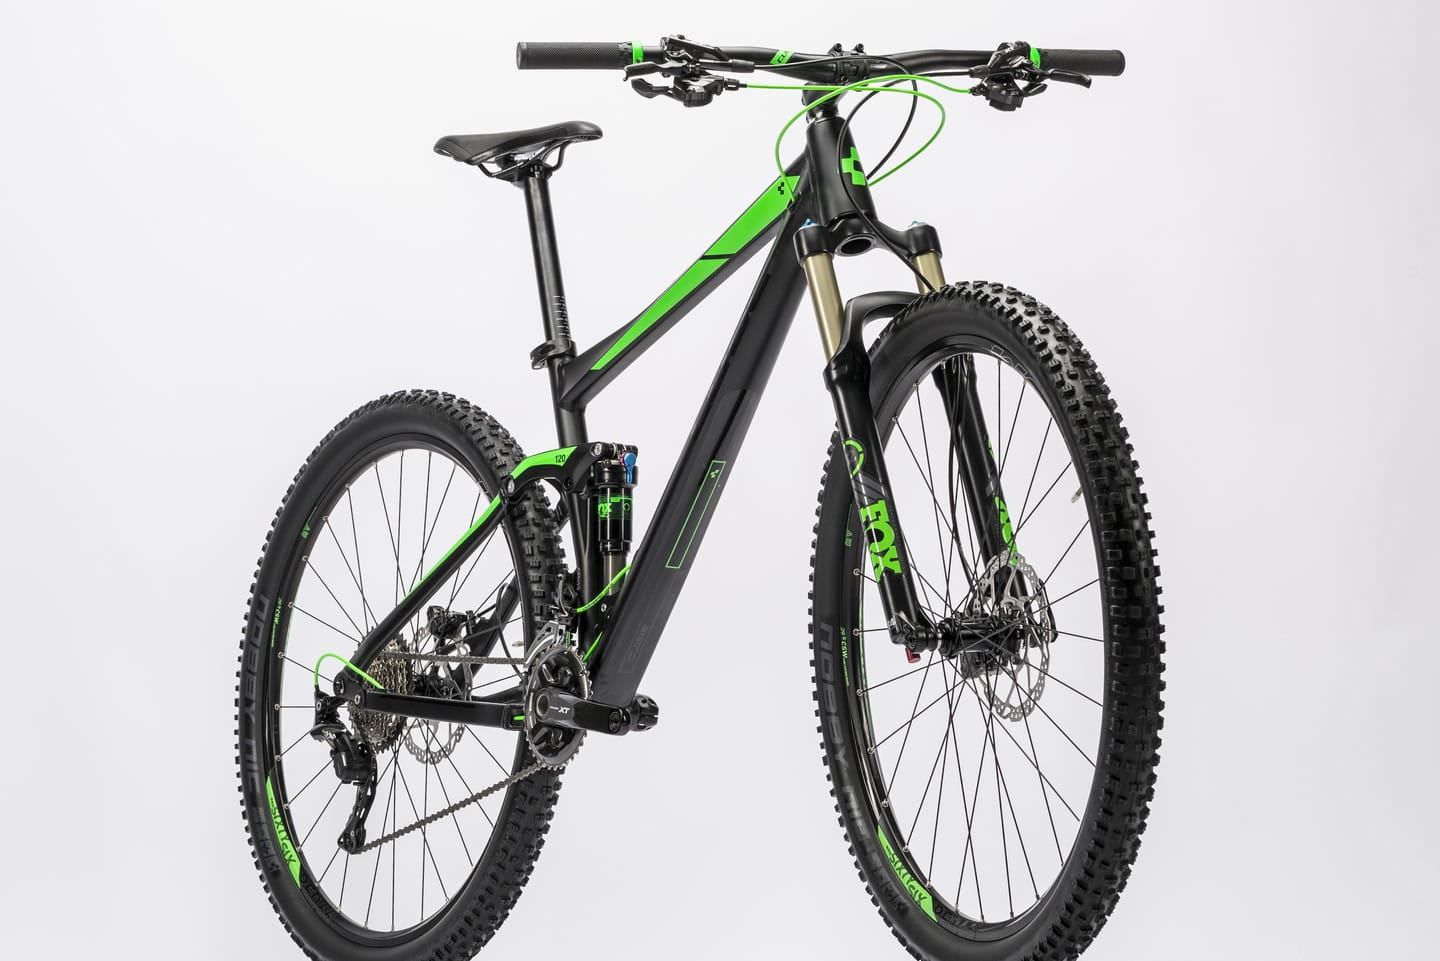 cube stereo 120 hpa sl 29 fs mtb bike 2016 all terrain cycles. Black Bedroom Furniture Sets. Home Design Ideas